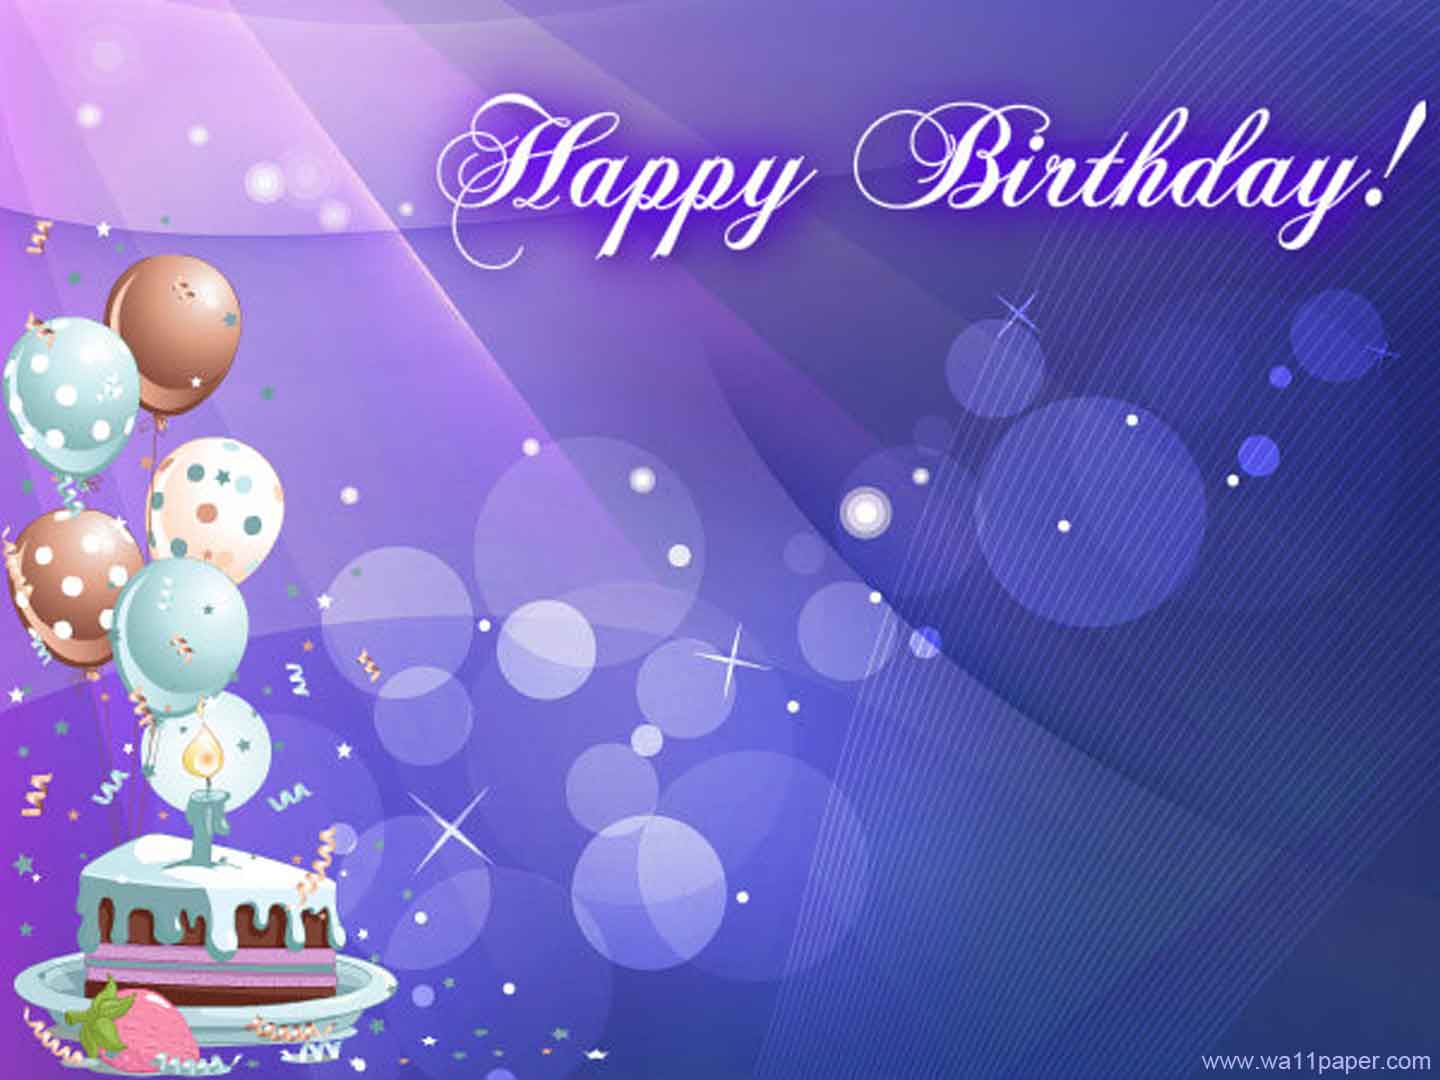 Happy Birthday Cards PPT Backgrounds